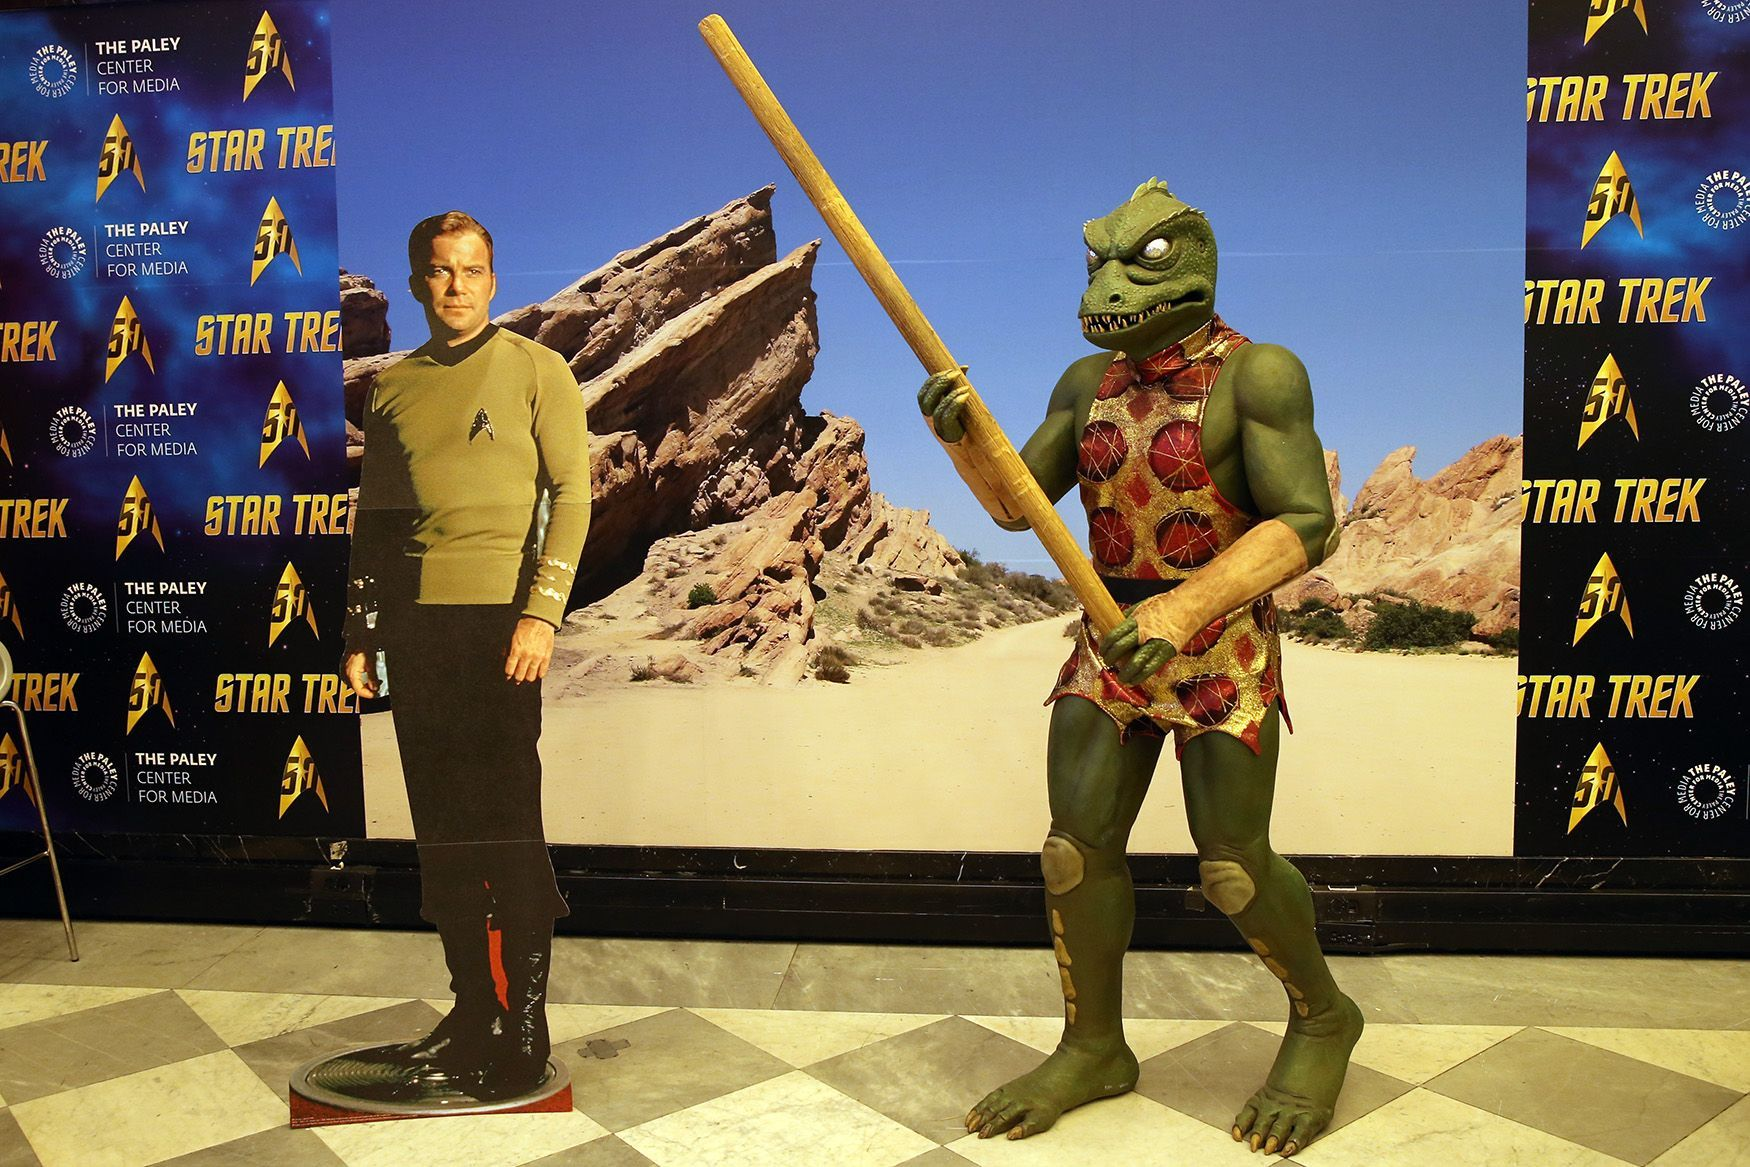 'Star Trek' 50th anniversary exhibit